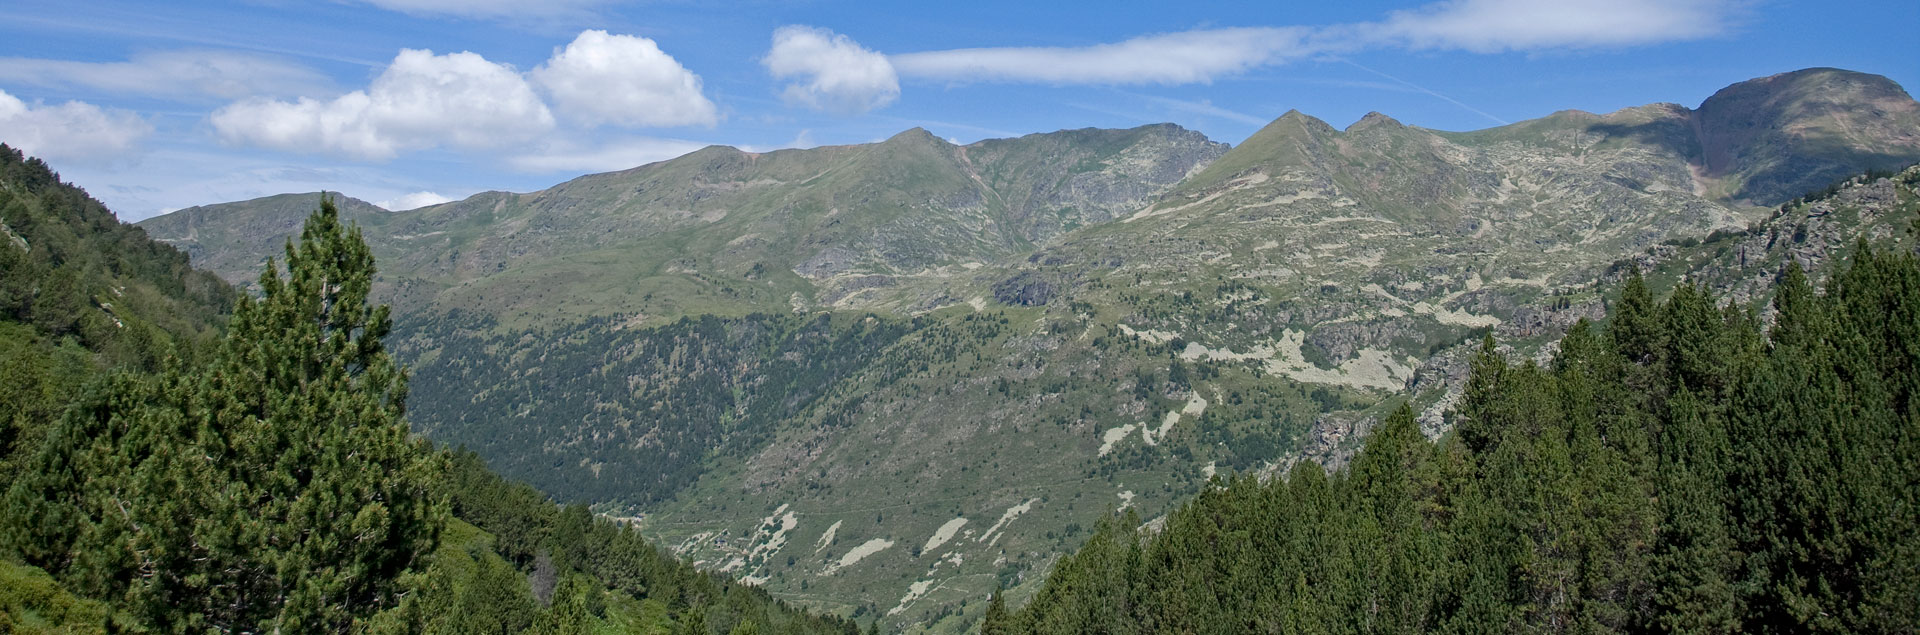 Hotel in Soldeu to hiking in Andorra